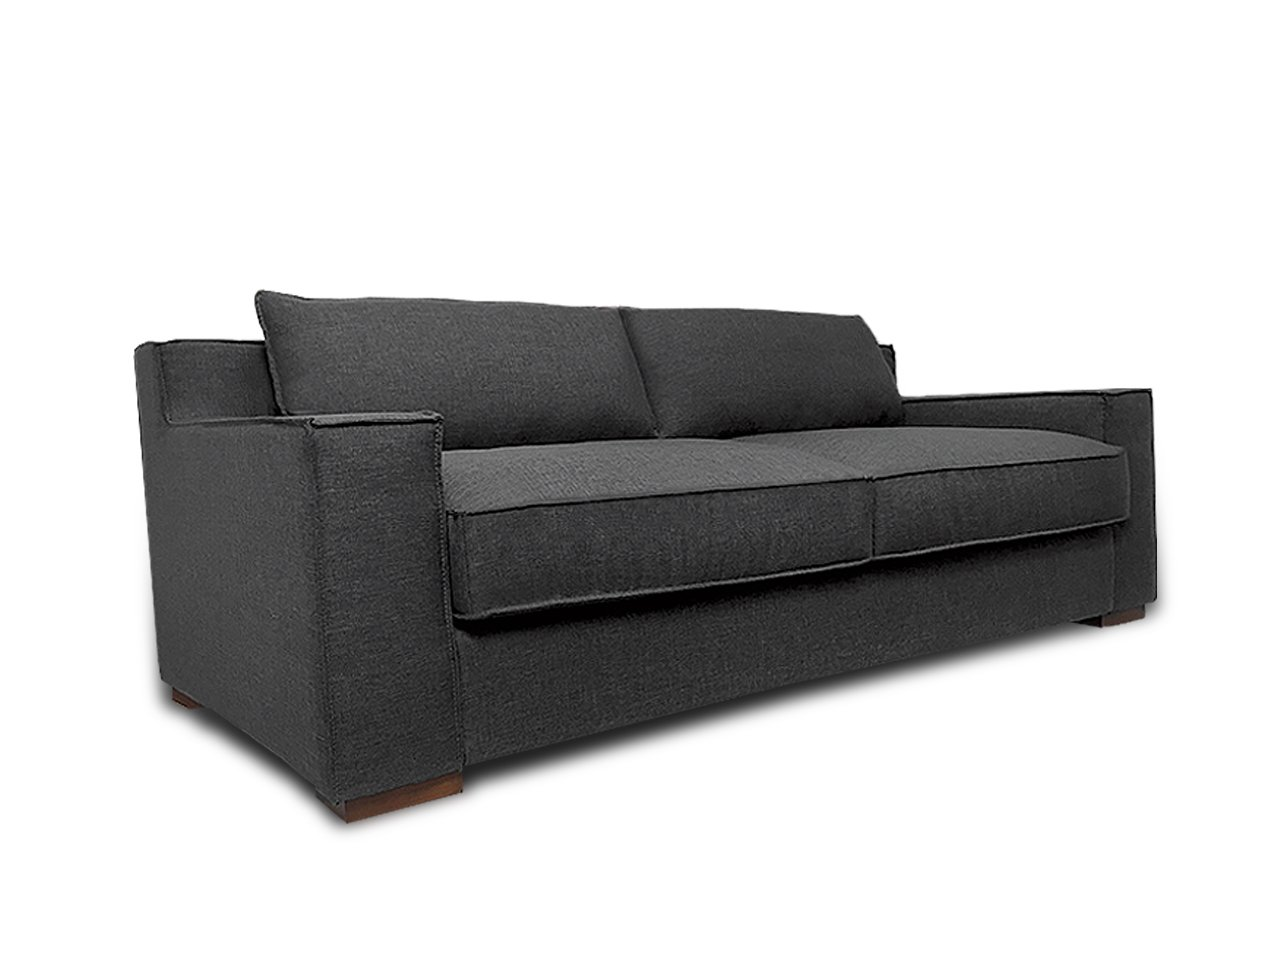 Divano Roma Furniture Signature Collection - Modern Capri Linen Sofa with Real Goose Feathers and Wide Track Arm